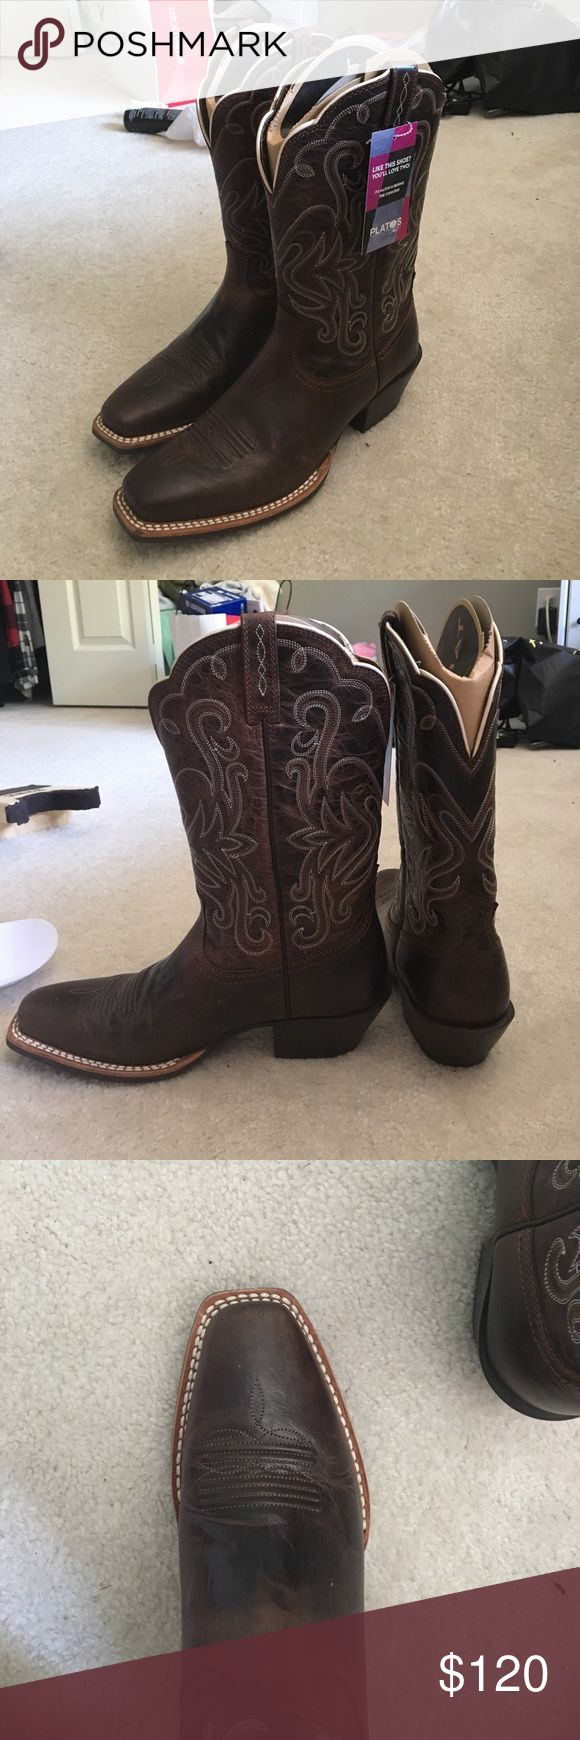 Brand new Ariat Cowboy Boots Brand new never worn Ariat Cowboy boots, dark brown with white stitching. Cardboard inserts still in them. Size 8.5, snip toe. Scalloped top edges, sadly they are too big for me. Ariat Shoes Heeled Boots